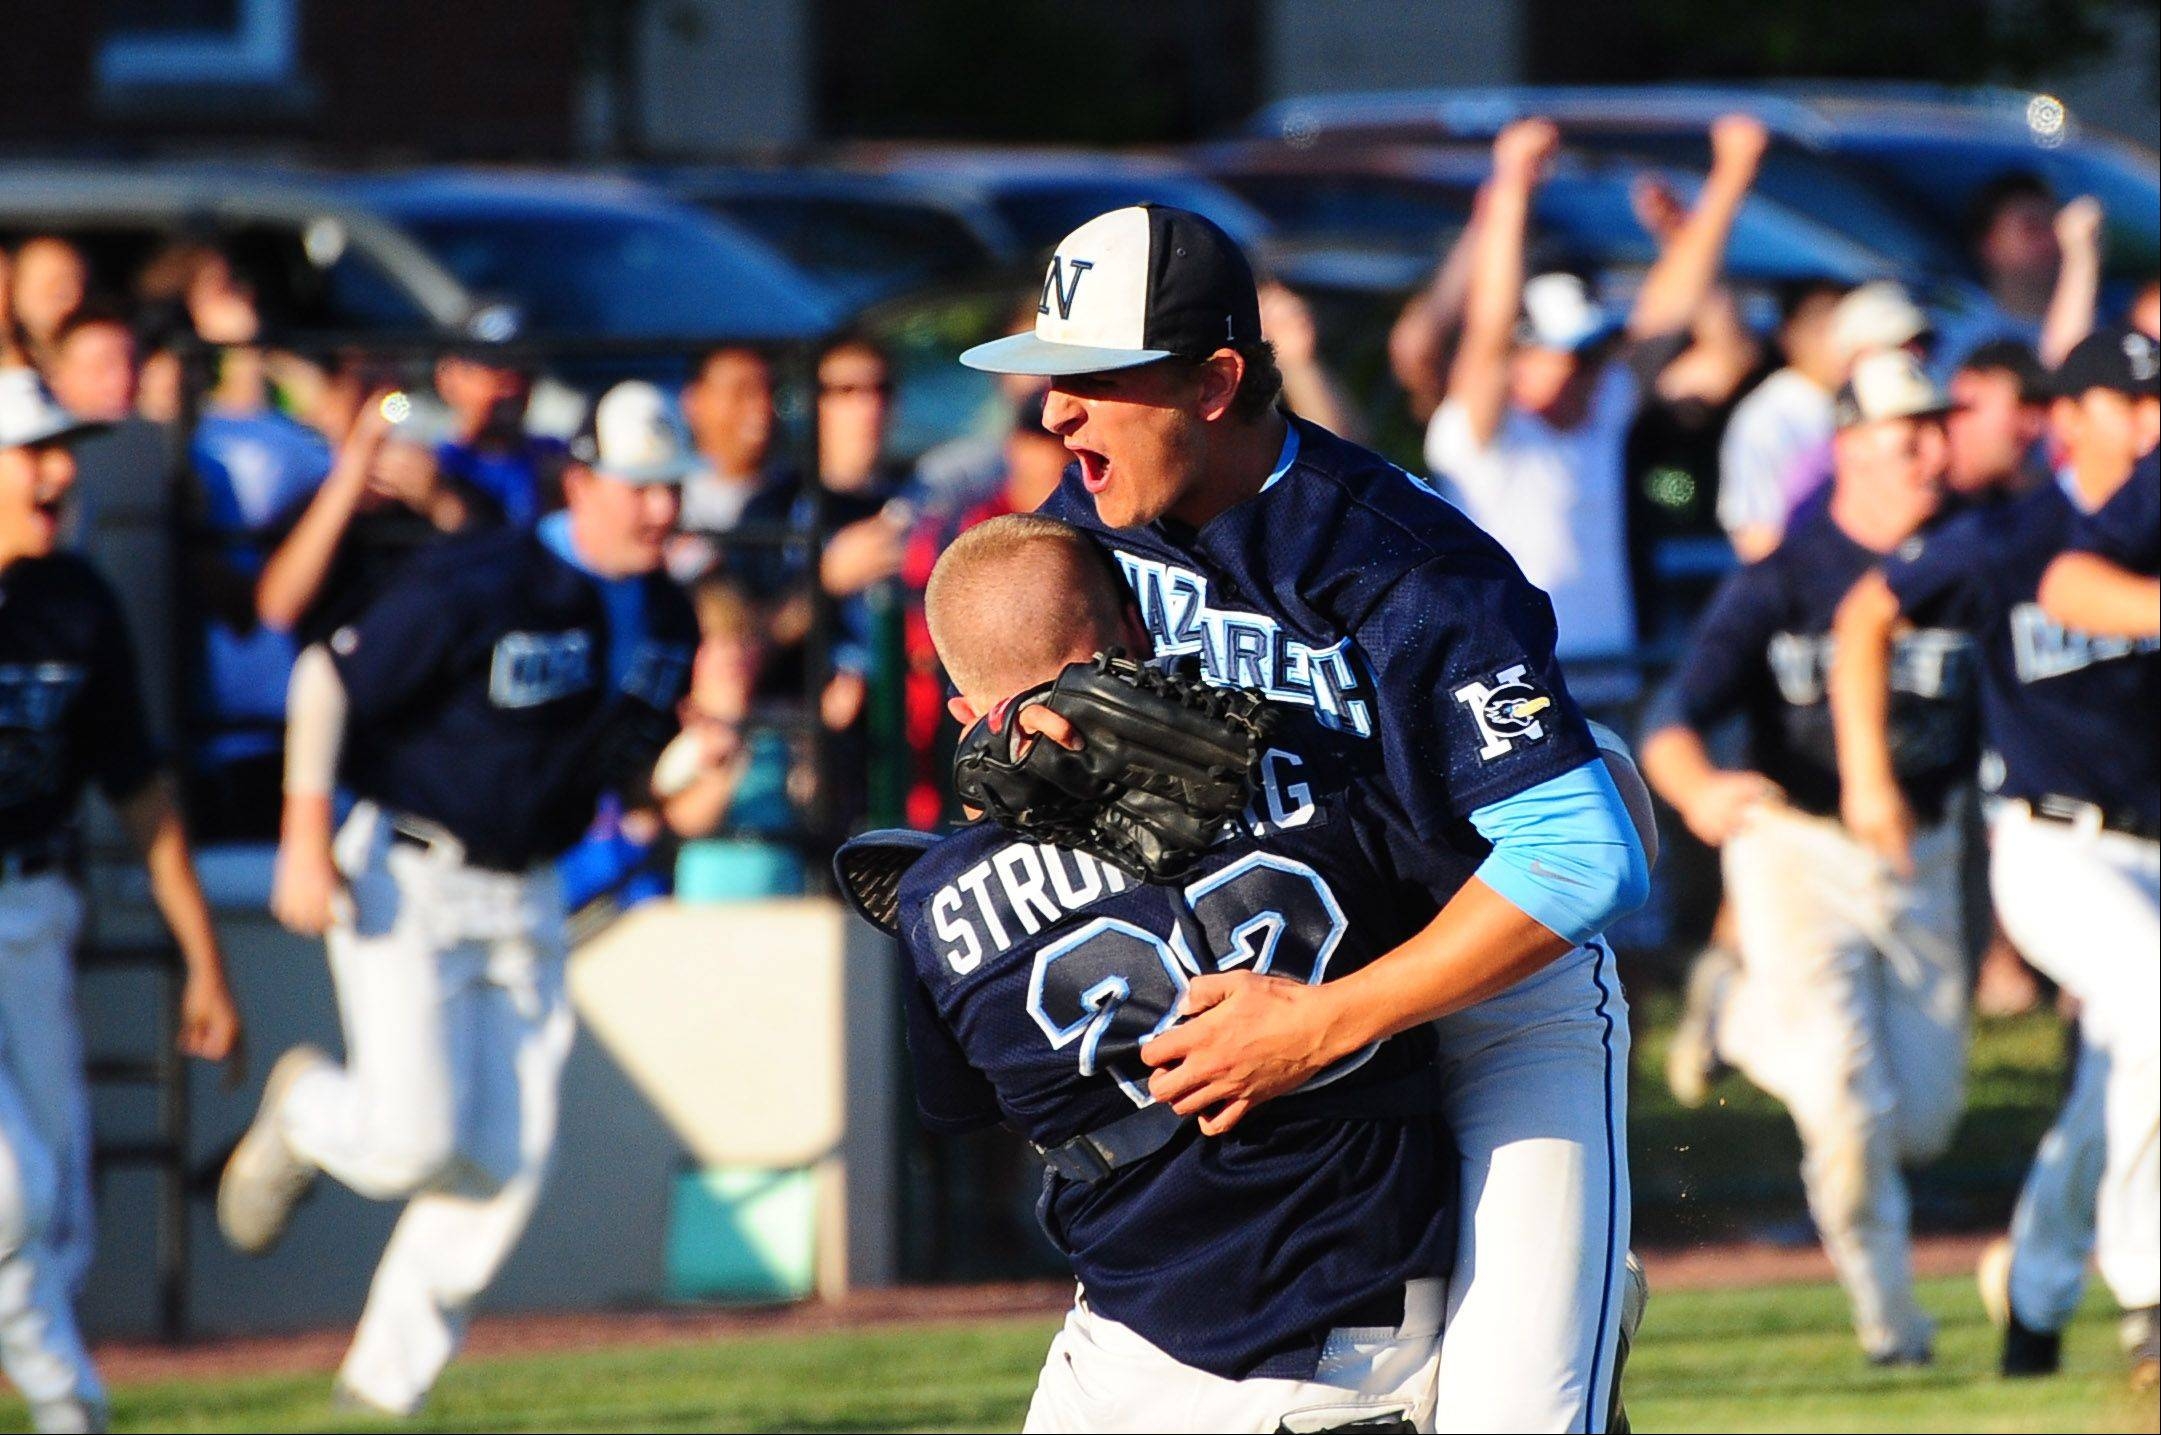 Nazareth pitcher Dominic Purpura celebrates with catcher Mike Stromberg after the final out in Roadrunners' 7-2 victory over Grayslake Central in Class 3A baseball supersectional action Monday.